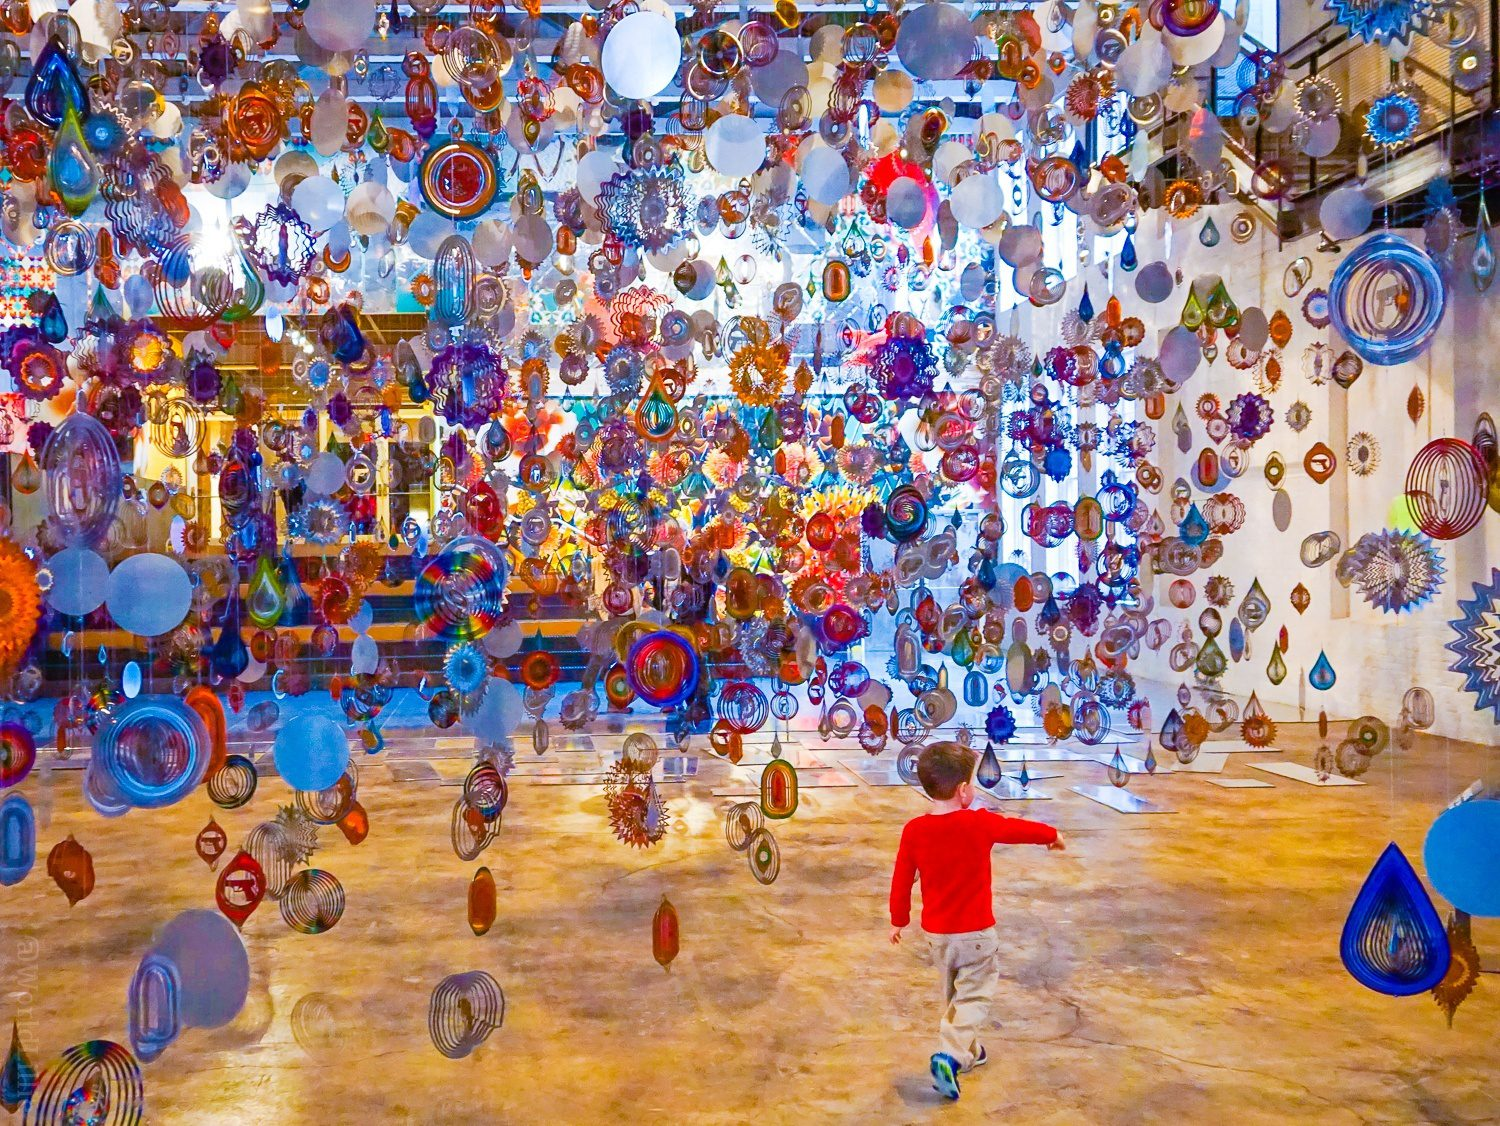 The art at MASS MoCA is great for the whole family!